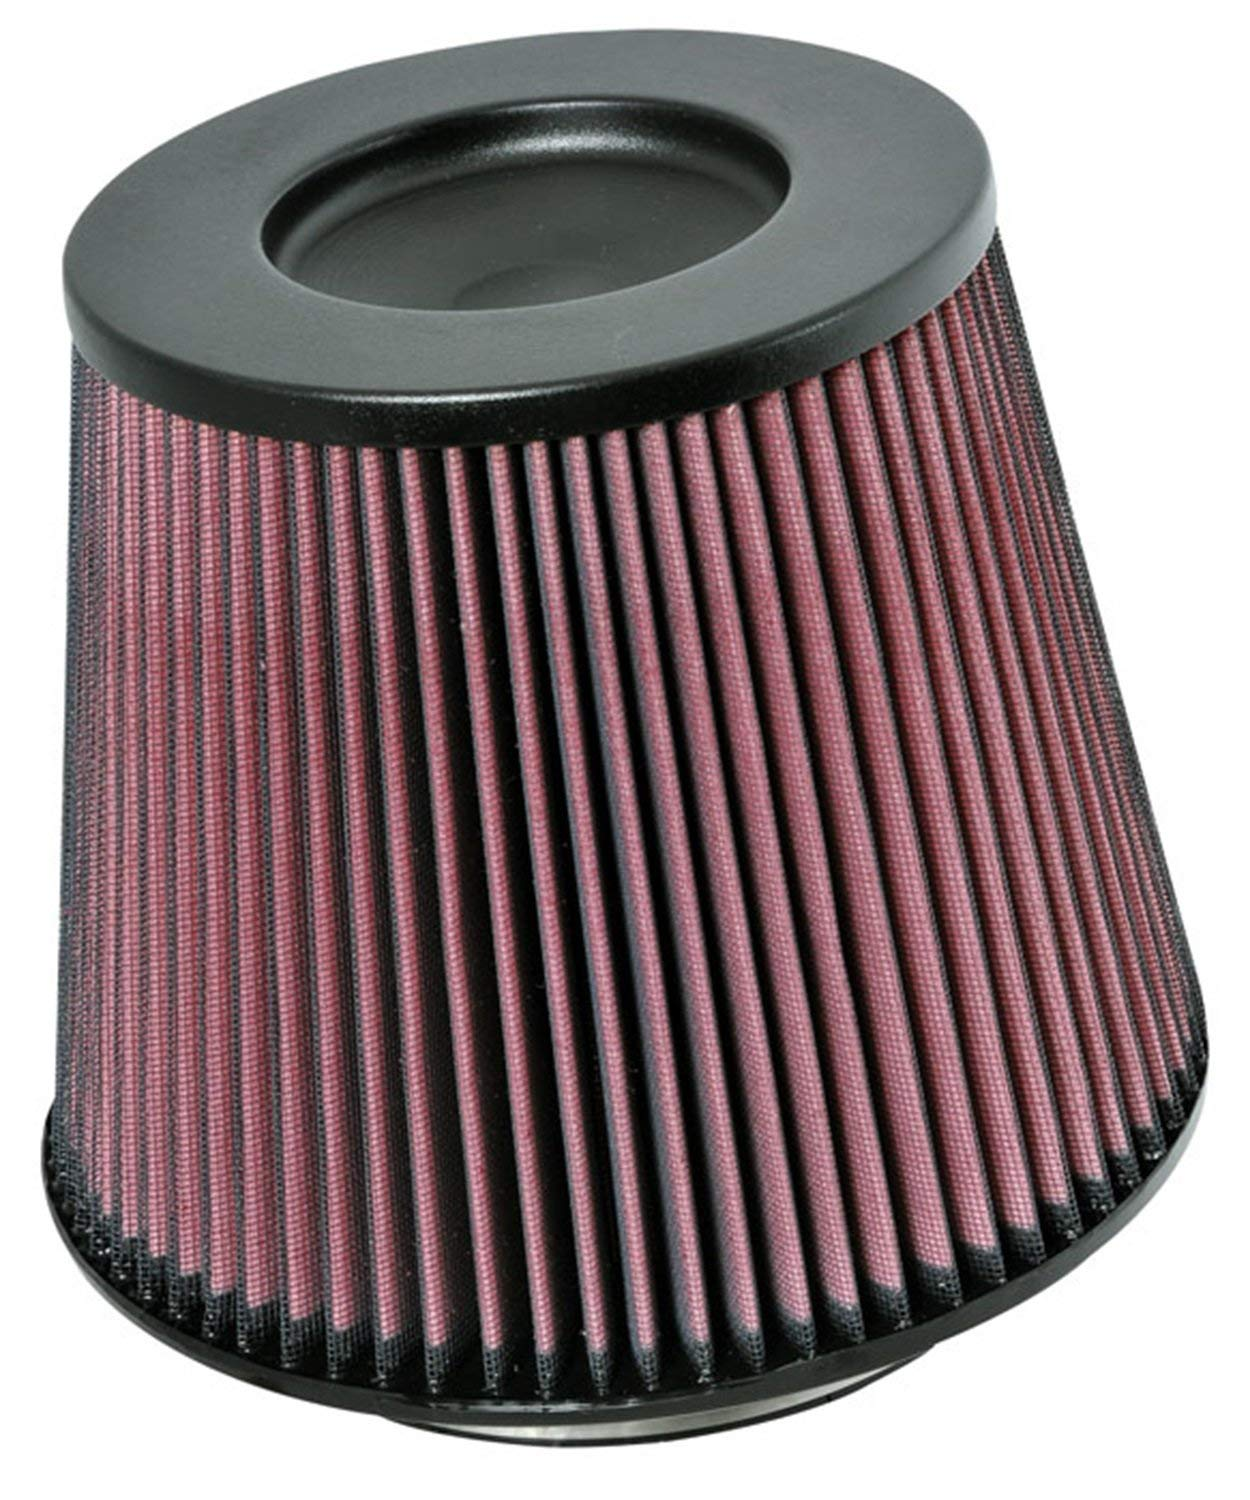 K&N RC-5179 Universal Clamp-On Air Filter: Round Tapered; 6 in (152 mm) Flange ID; 7.5 in (191 mm) Height; 9 in (229 mm) Base; 6.625 in (168 mm) Top